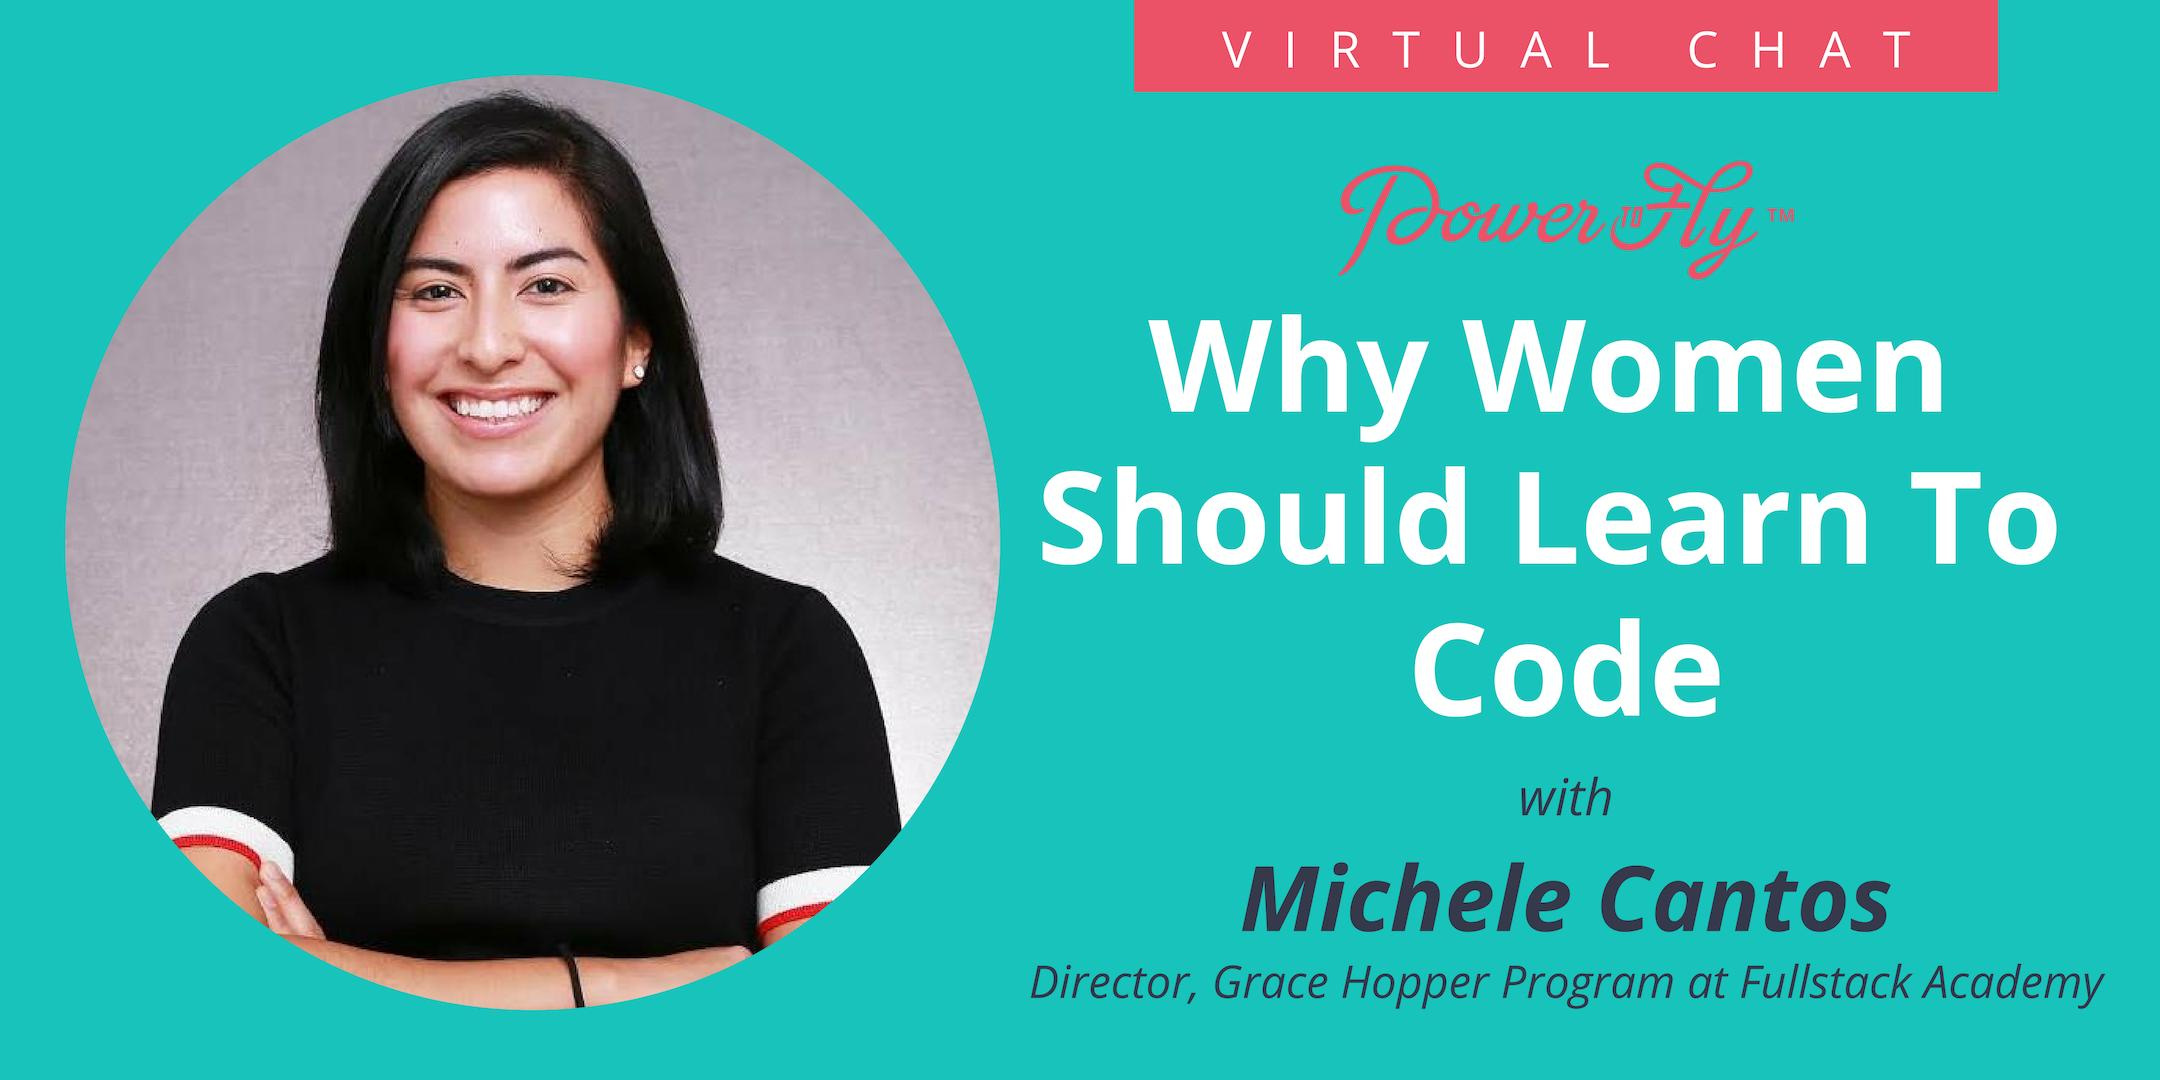 Why Women Should Learn To Code